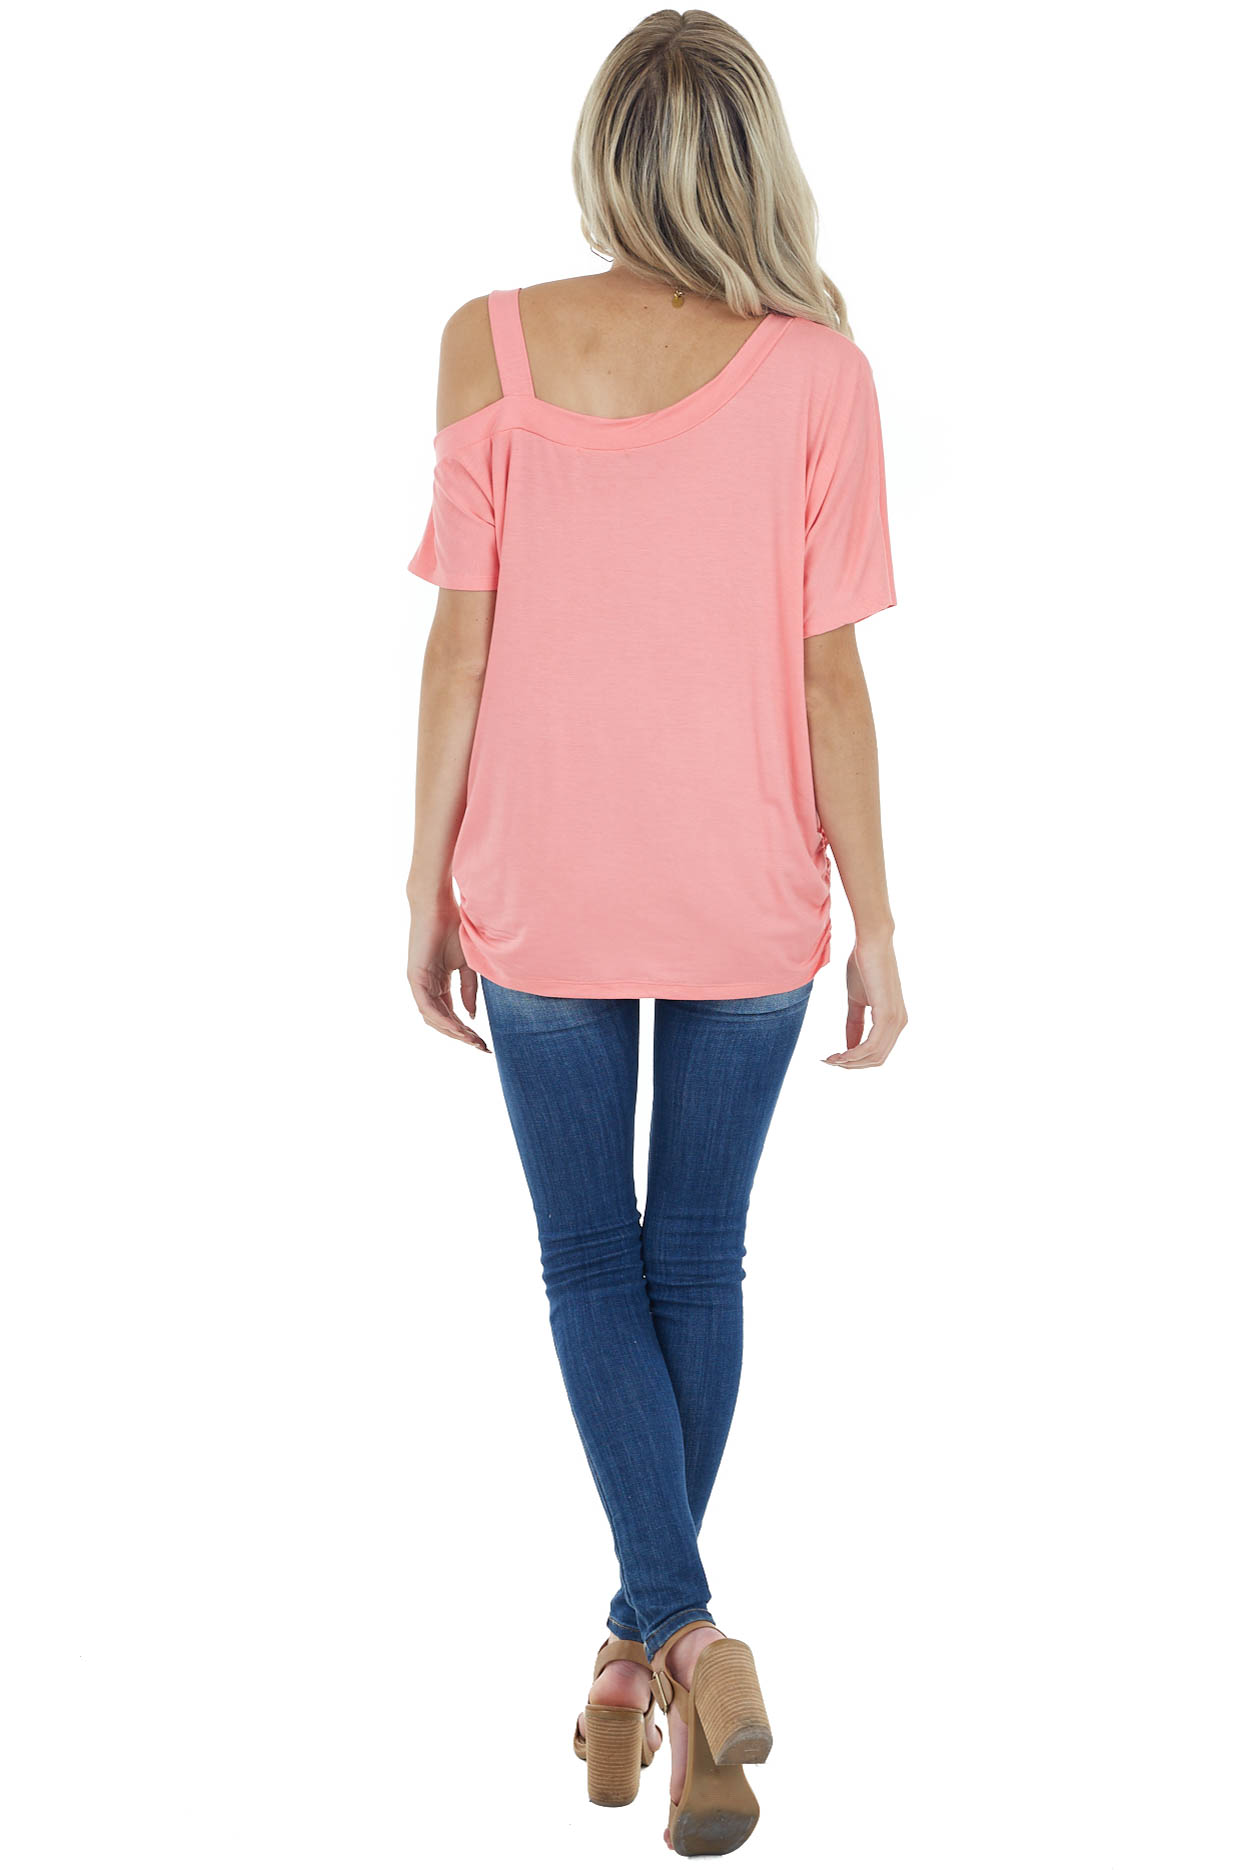 Coral Short Sleeve One Cold Shoulder Top with Ruching